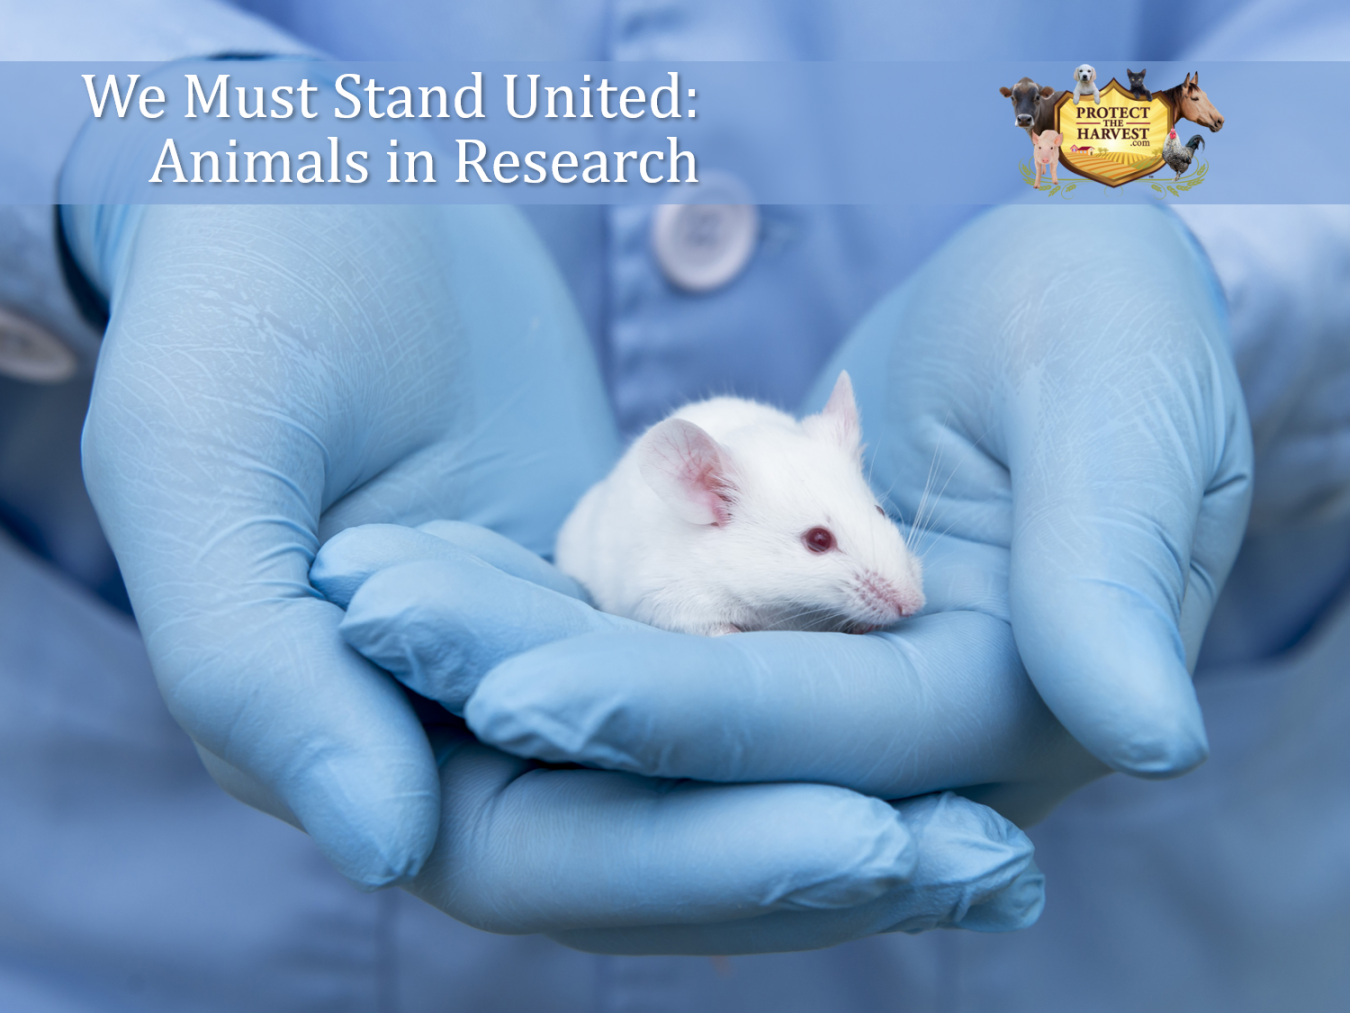 We Must Stand United - Animals in Resarch